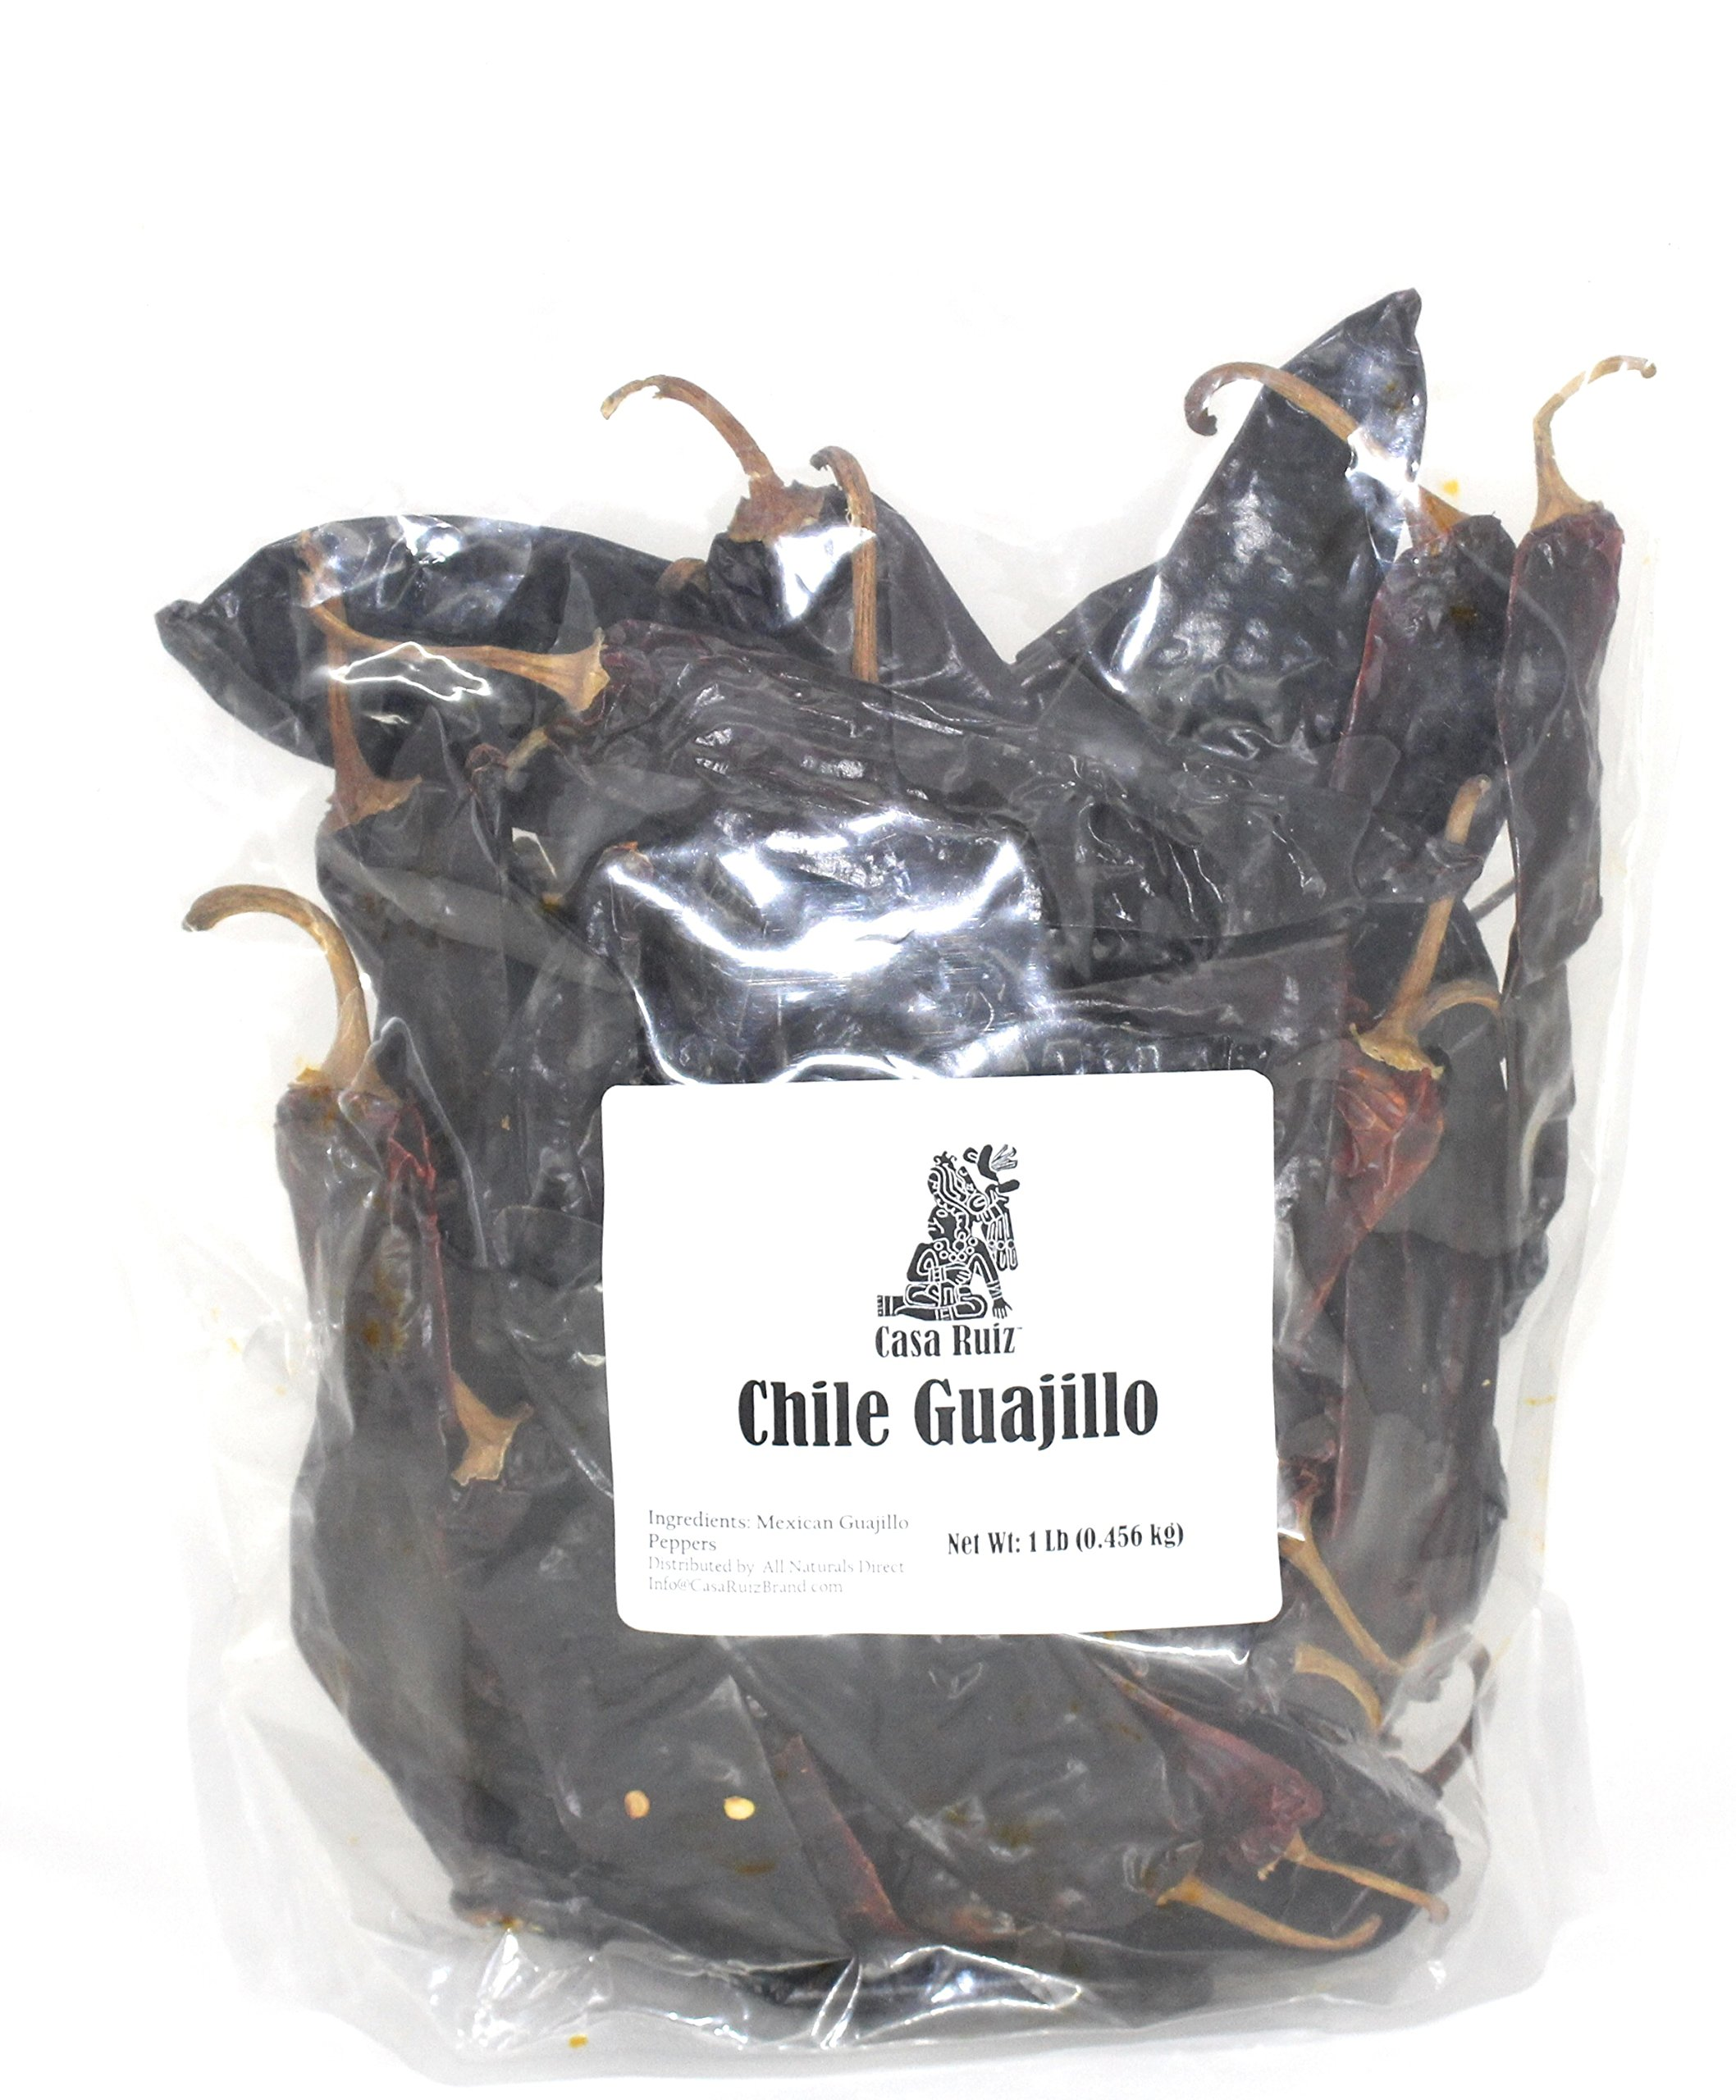 Chile Guajillo Mexican Guajillo Peppers 1 Lb Resealable Bag Casa Ruiz Brand Dried Whole Mirasol Chili Pods – Mild to Medium Heat – Sweet Spicy Tangy Fruity Pleasant Flavor Mexicano Travieso